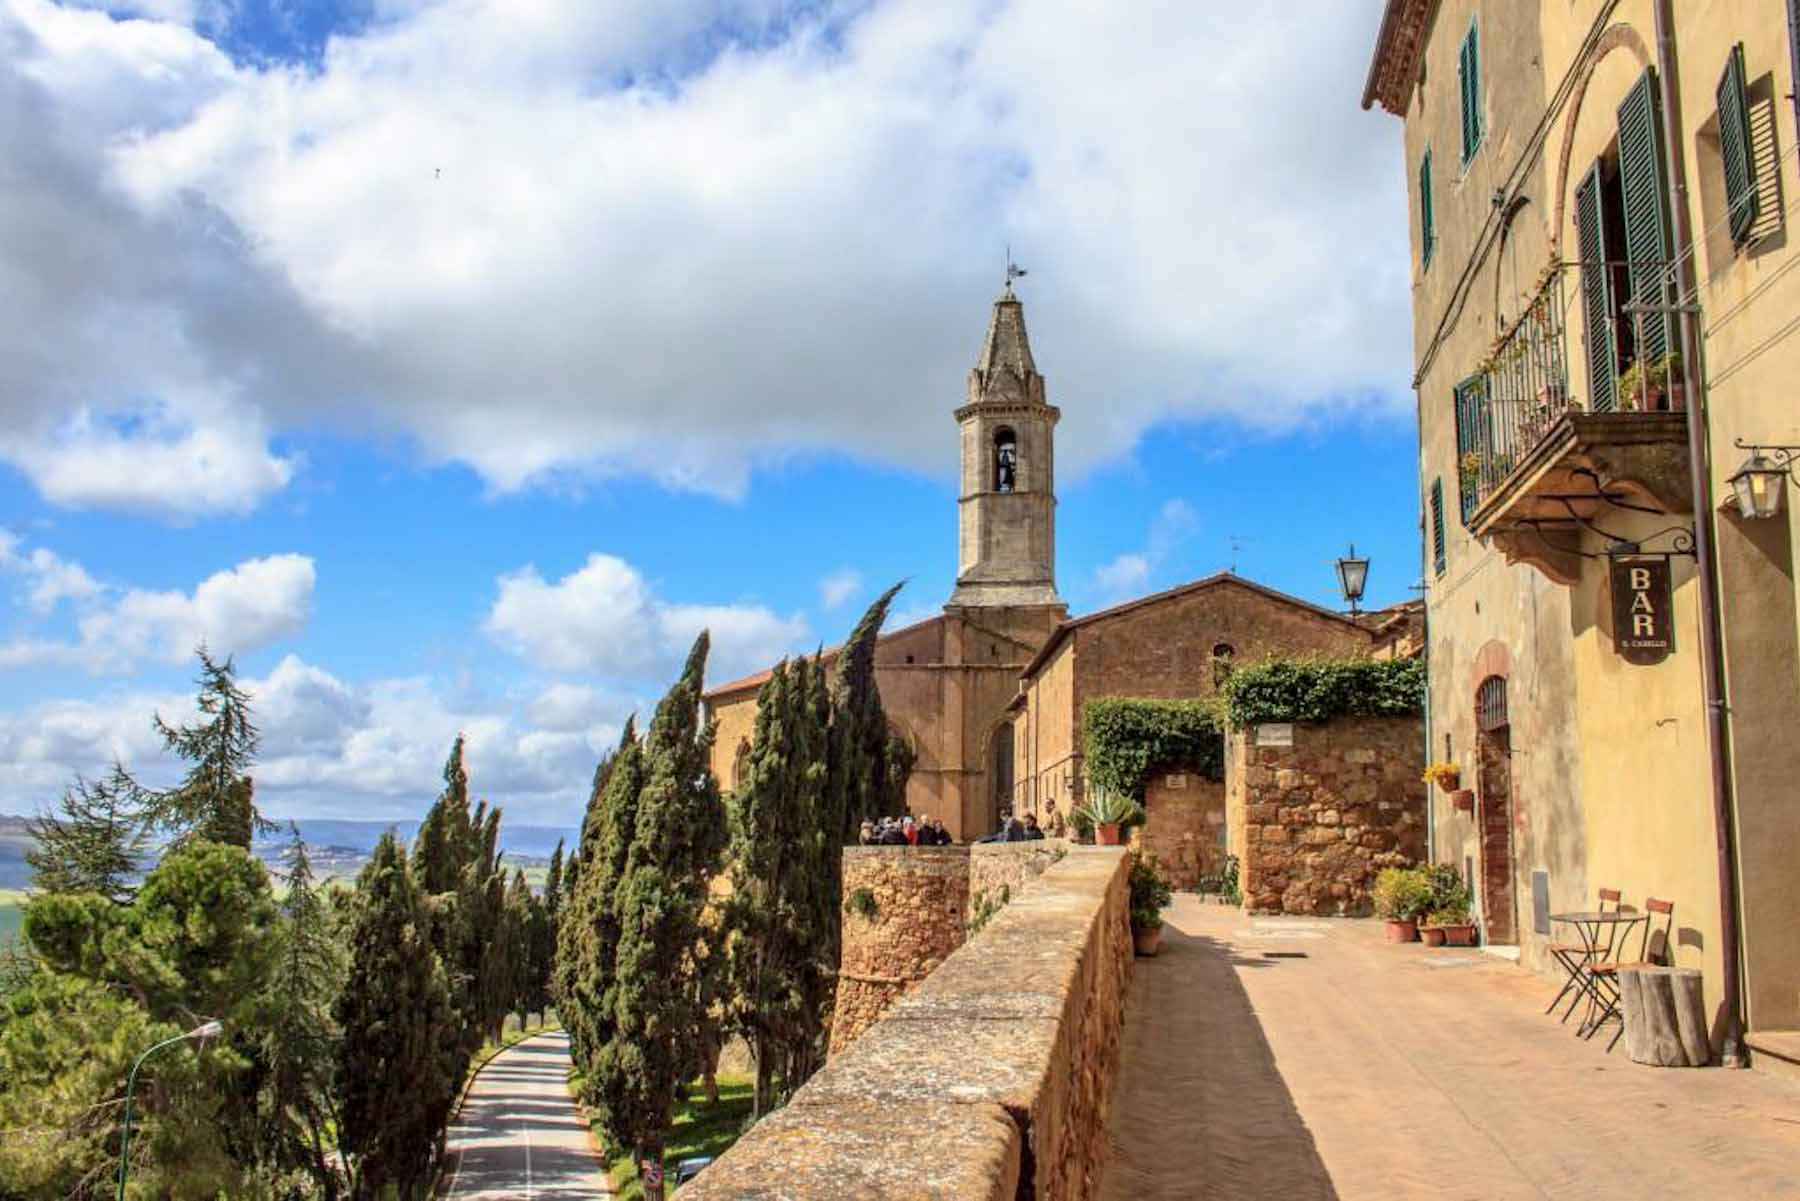 Pienza - Best places to visit in Tuscany